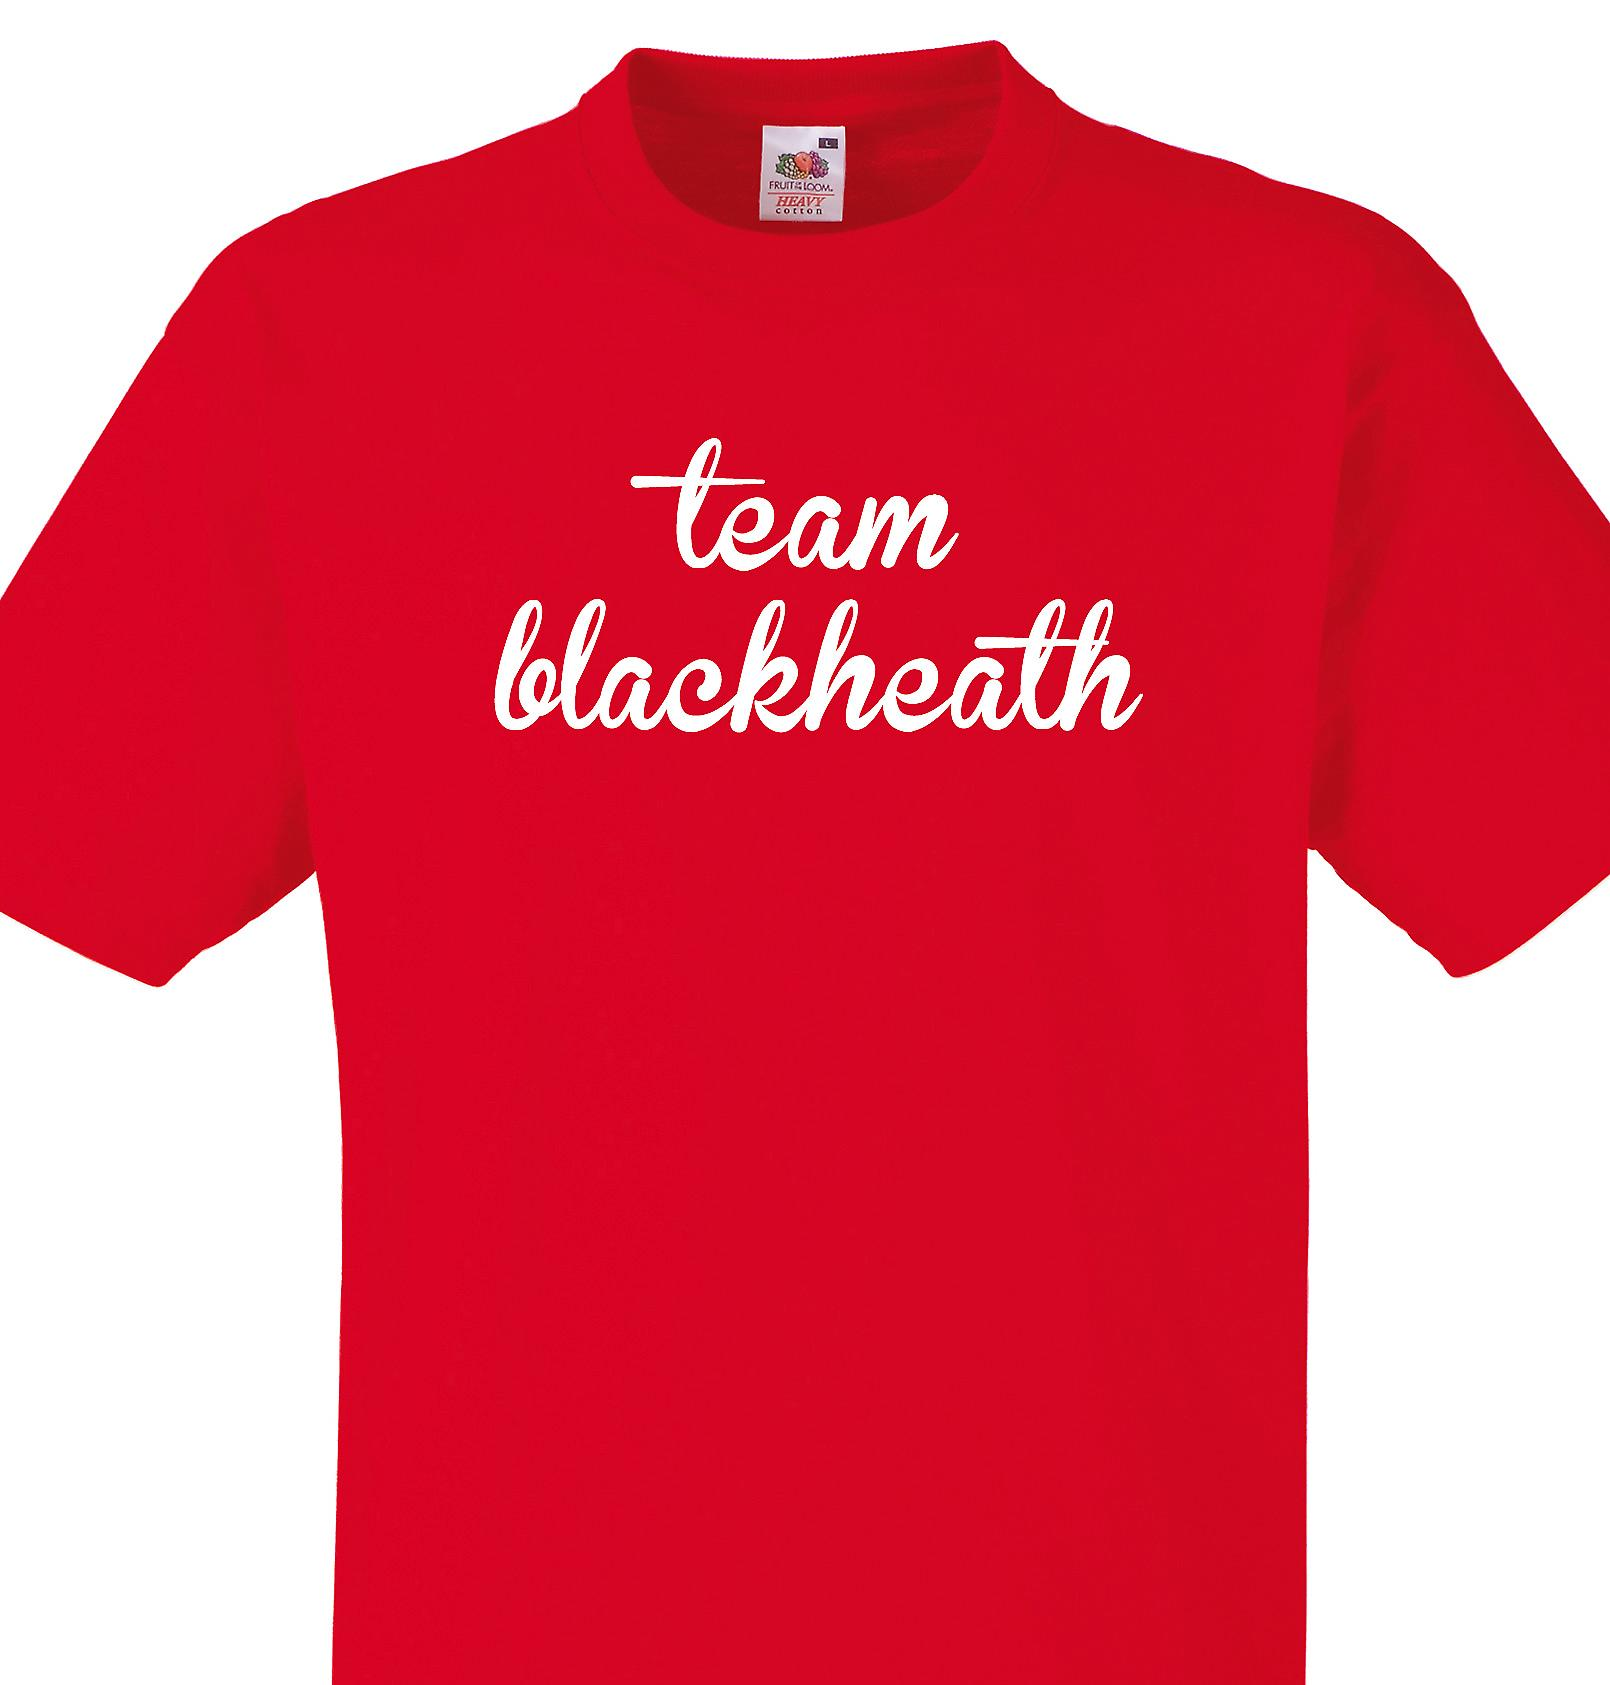 Team Blackheath Red T shirt